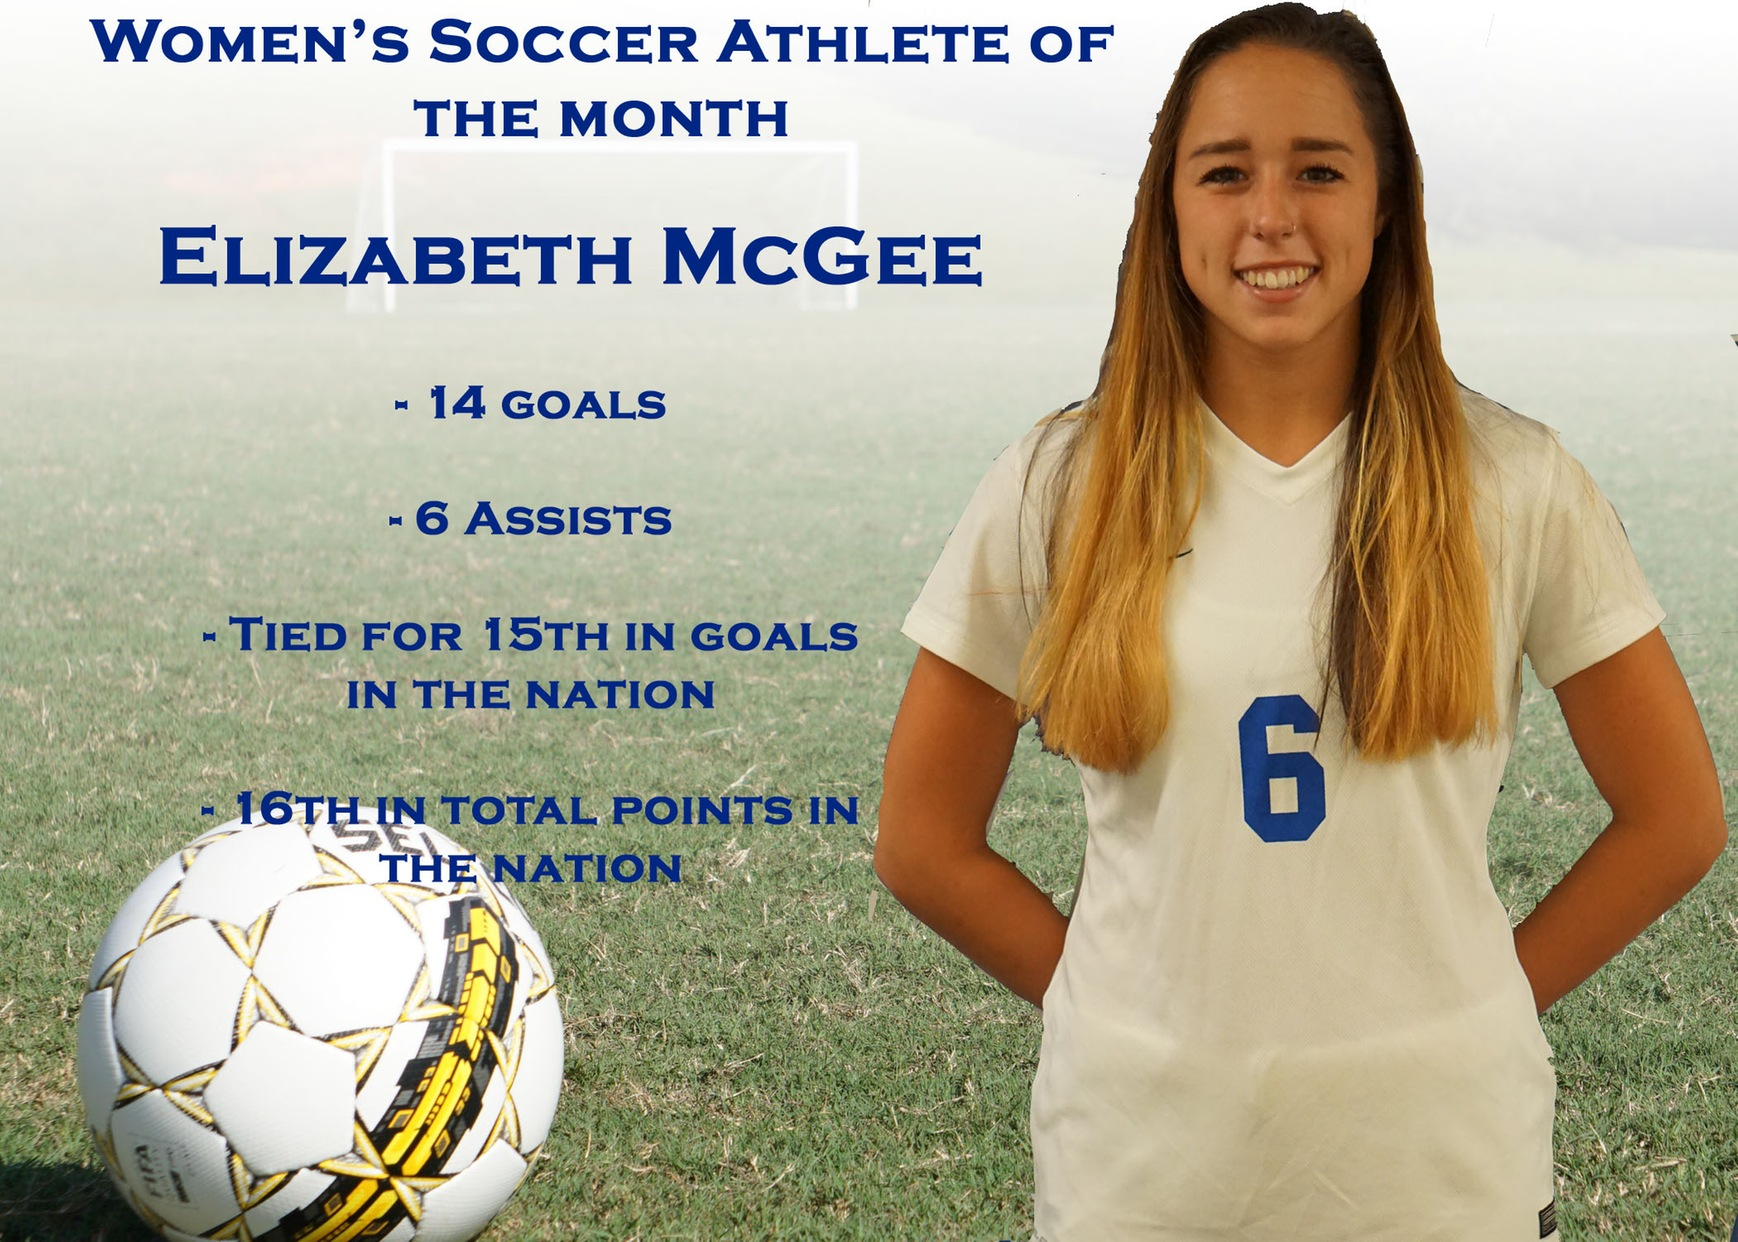 Women's Soccer Athlete of the Month